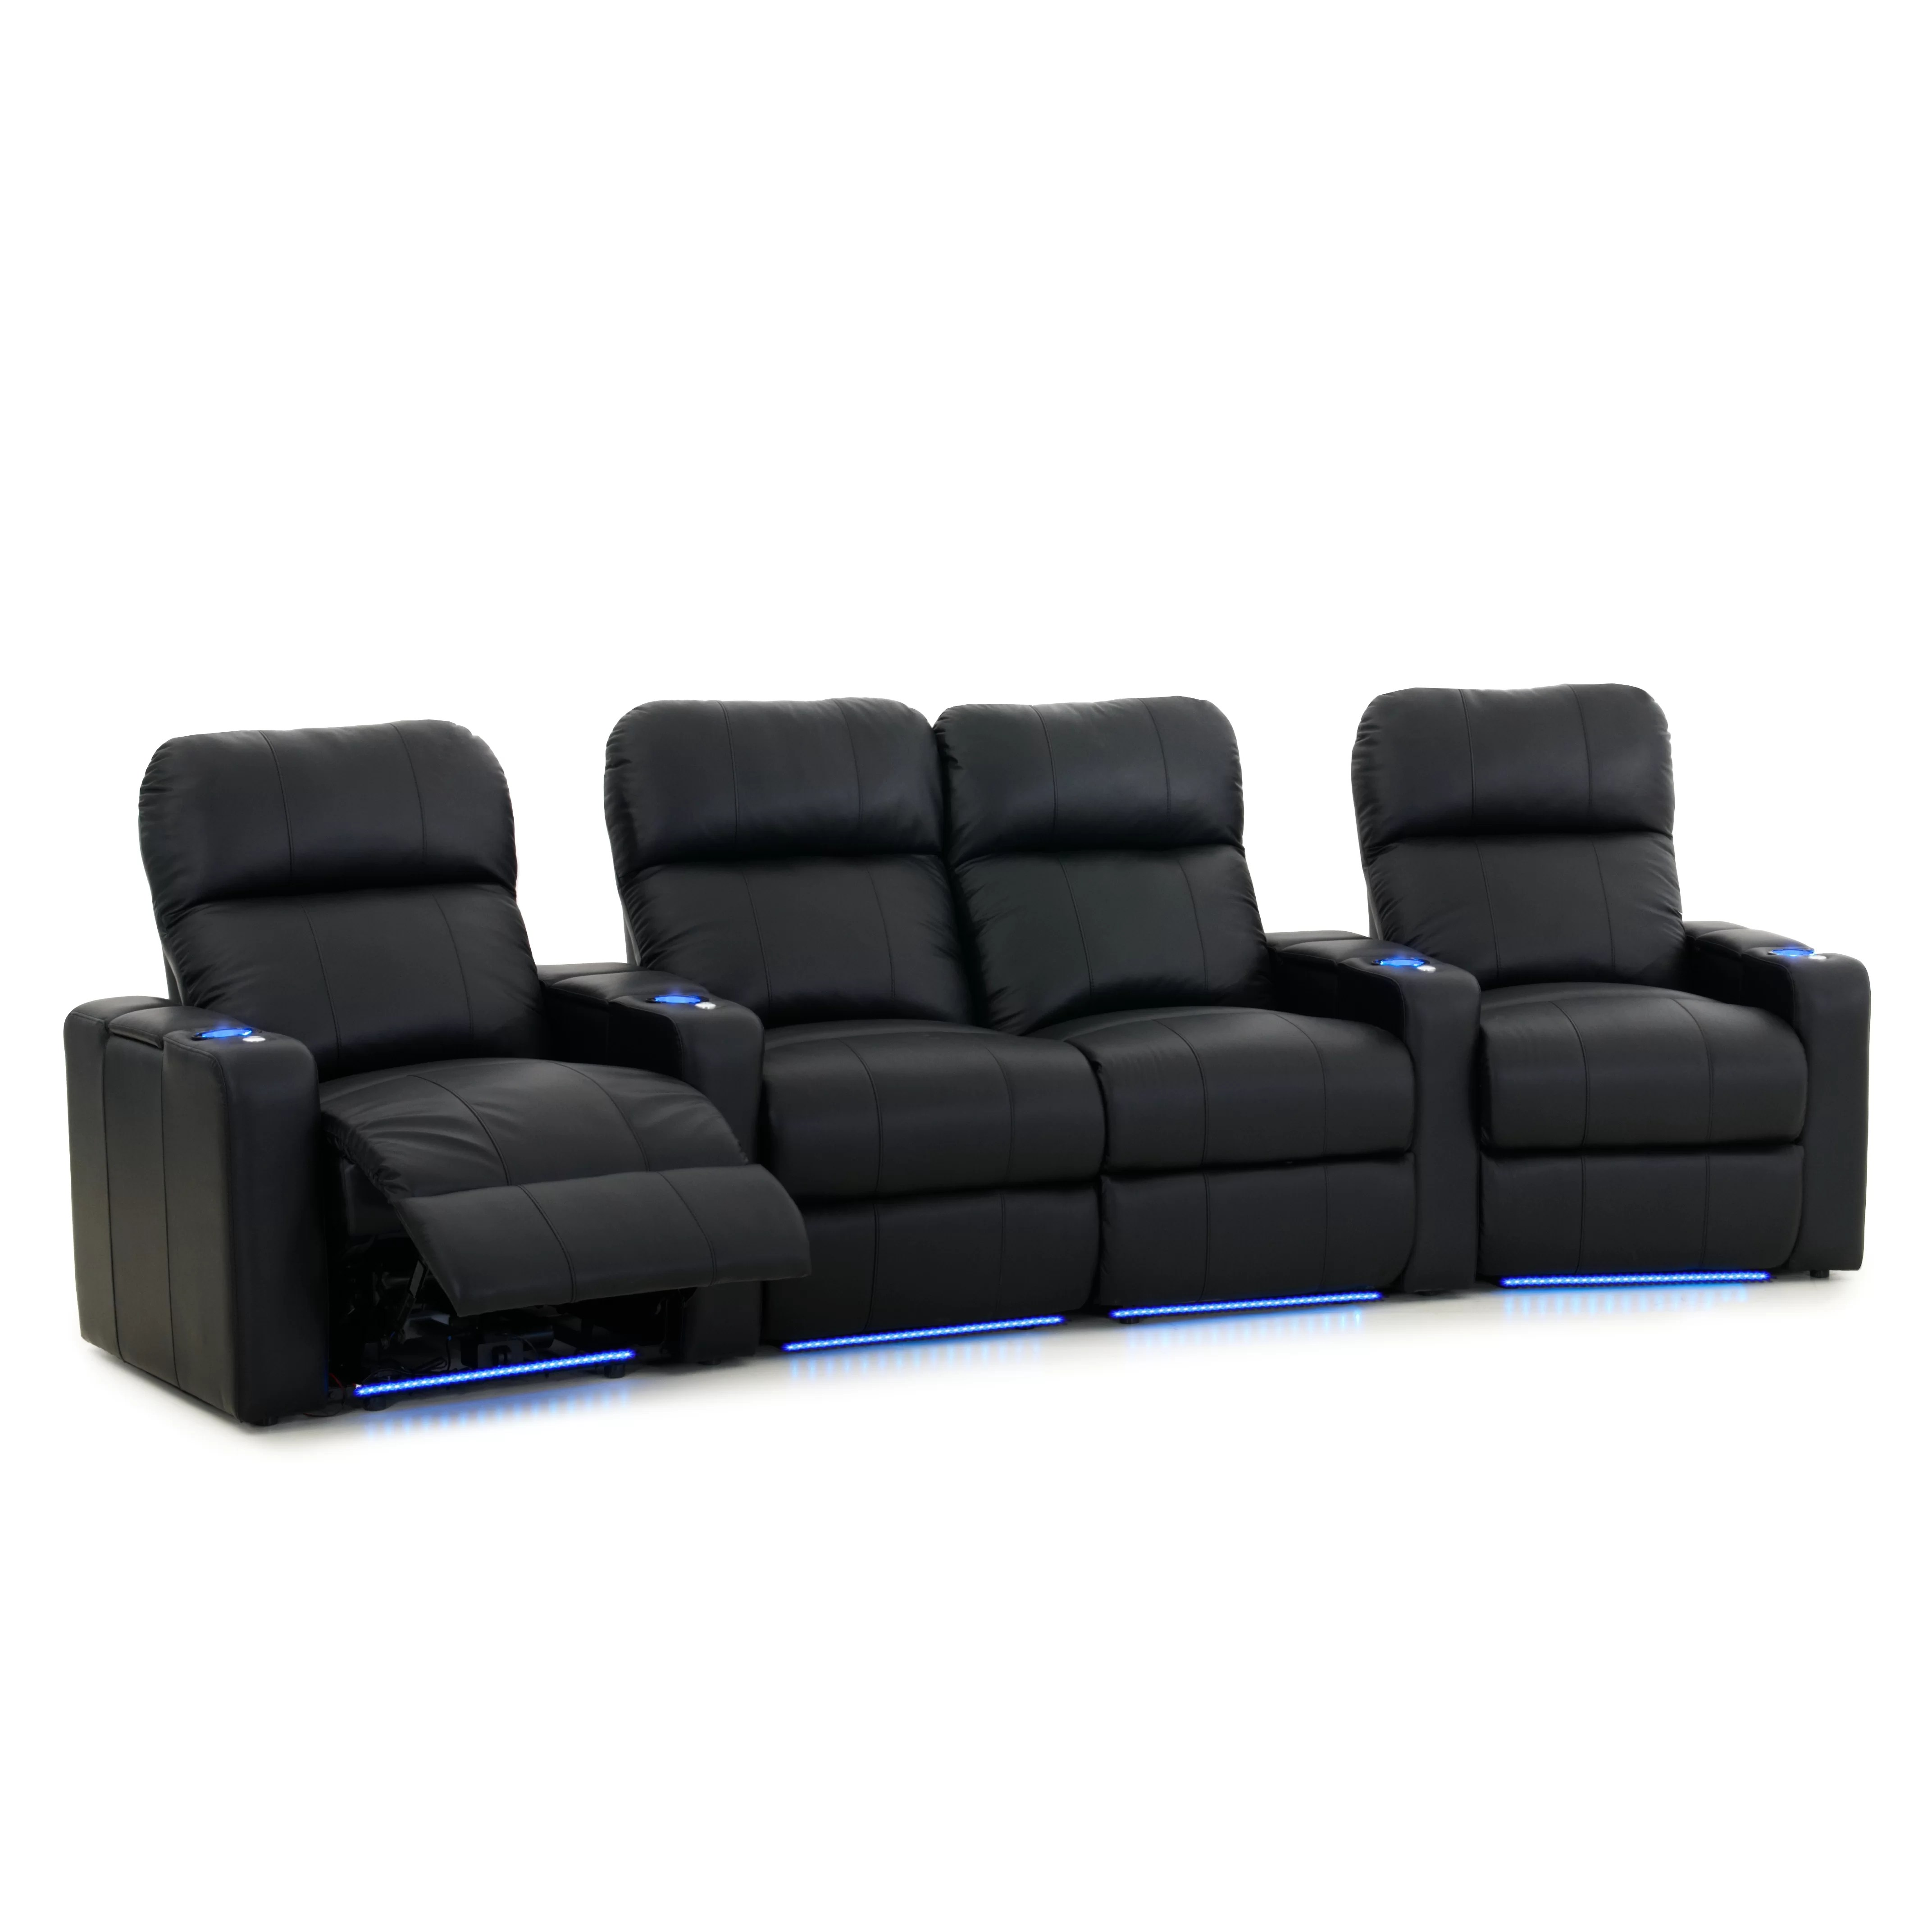 s turbo xl home theater loveseat row of octn l